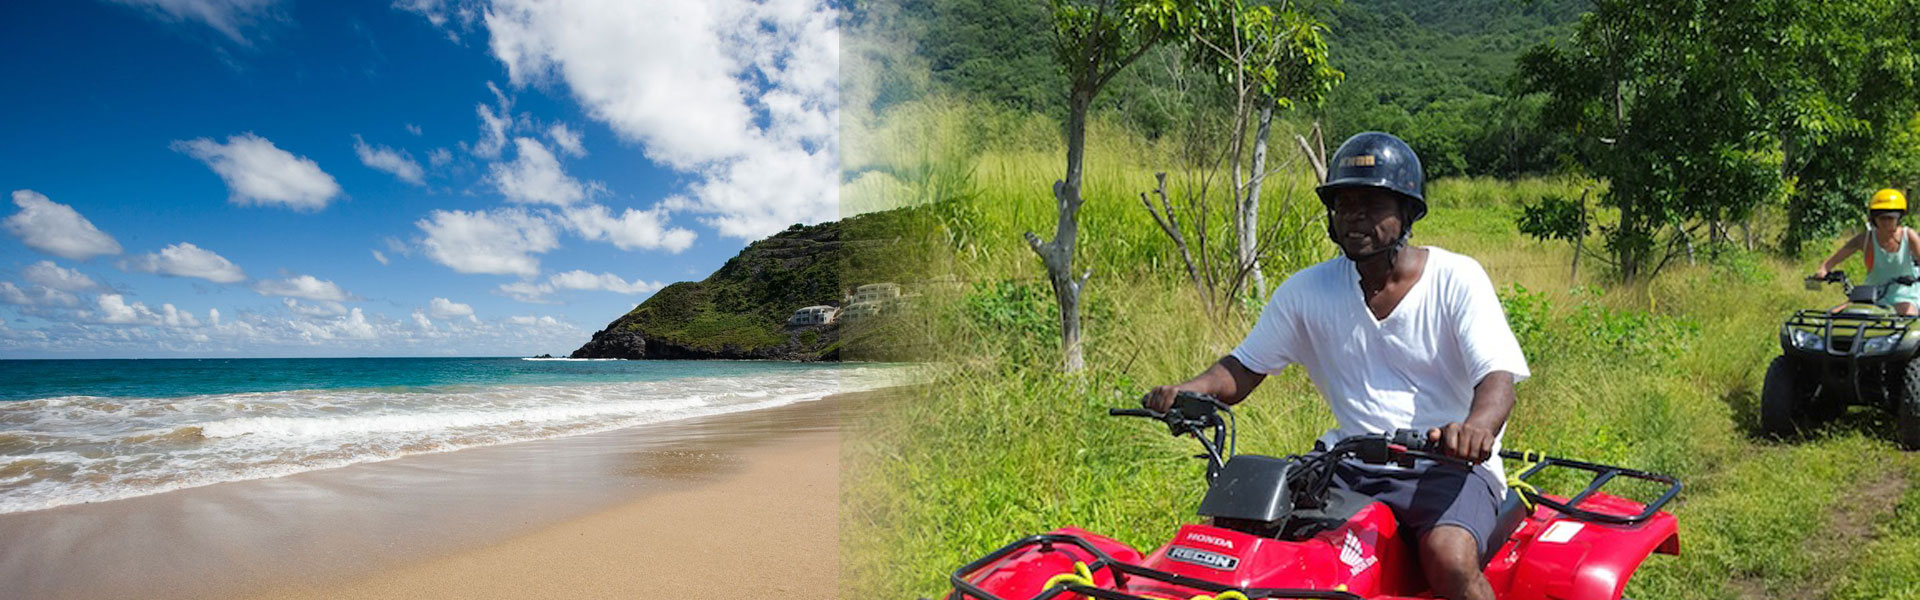 ATV & Beach Tour